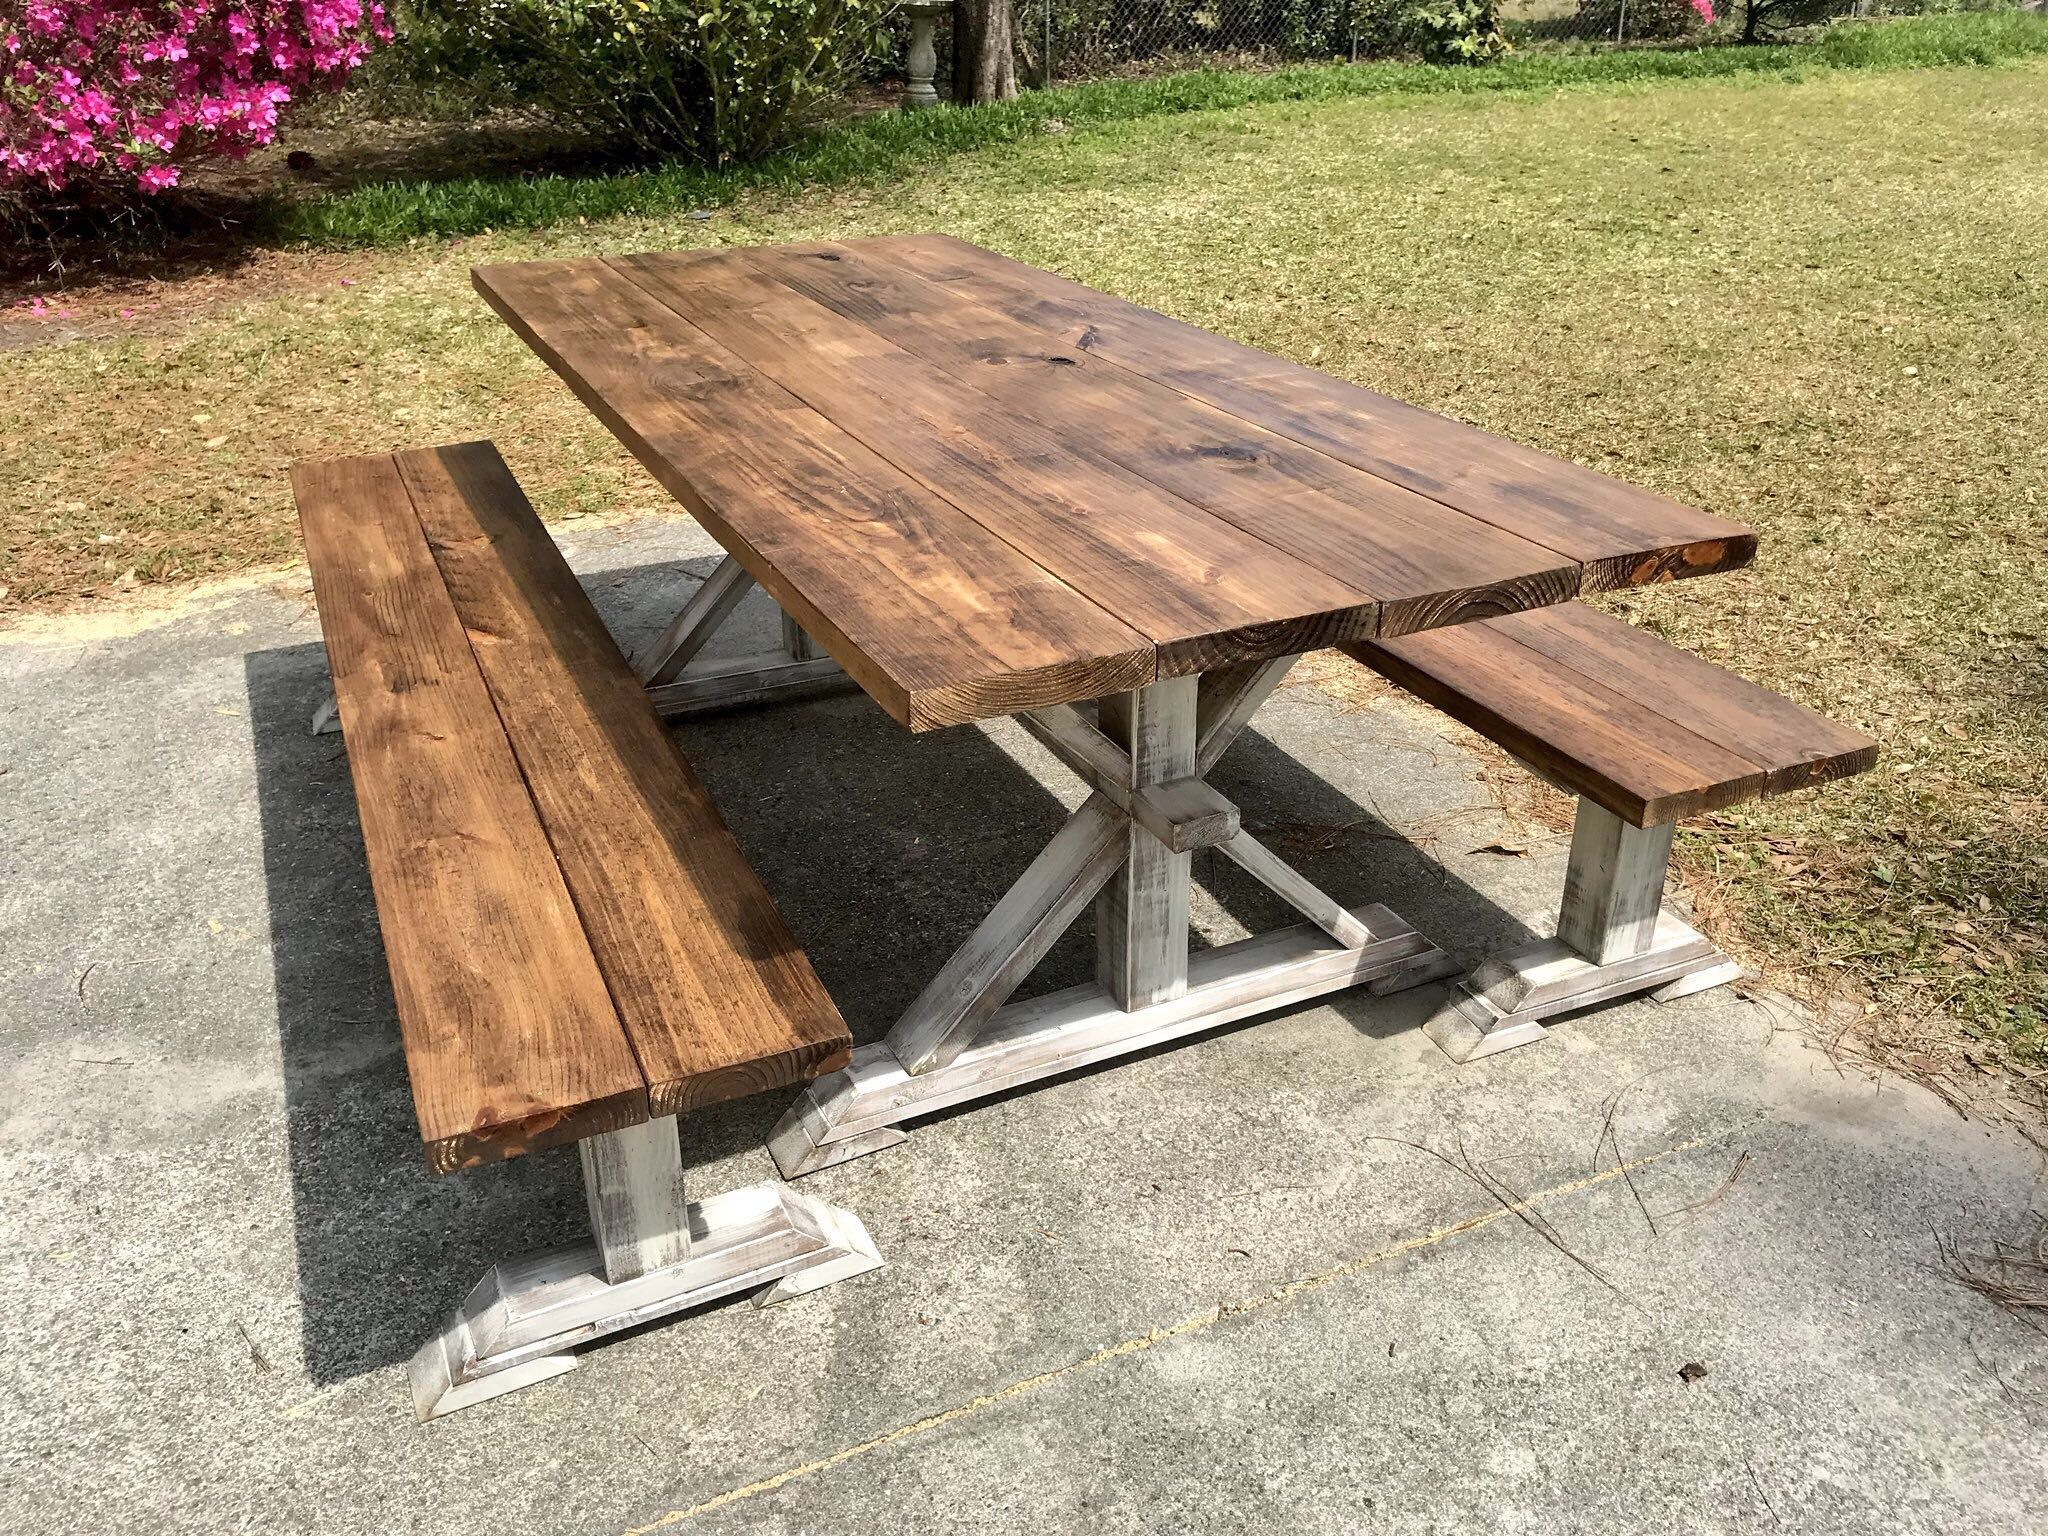 Rustic Pedestal 7ft Farmhouse Table With Long Benches Provincial Brown With White Distressed Base Dining Set Outdoor Farmhouse Table Farmhouse Table Farmhouse Table With Bench